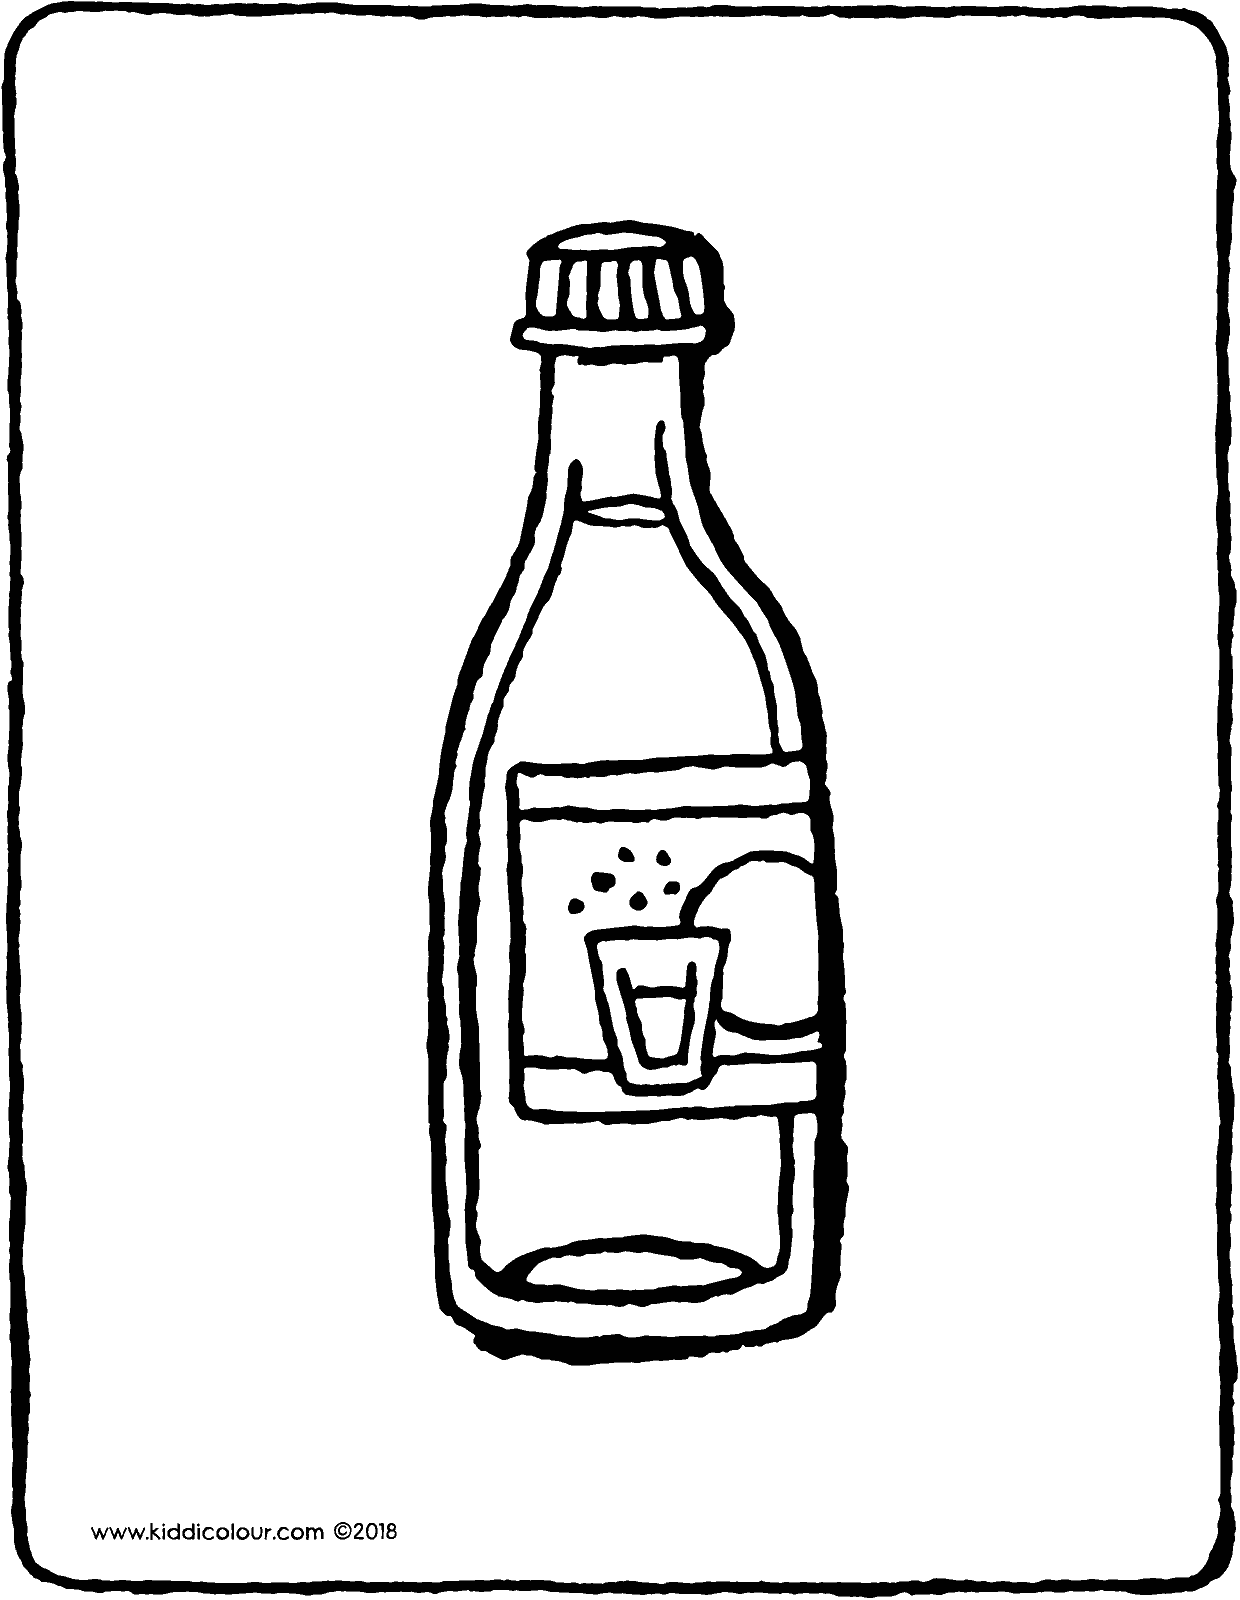 a bottle of sparkling water colouring page drawing picture 01V